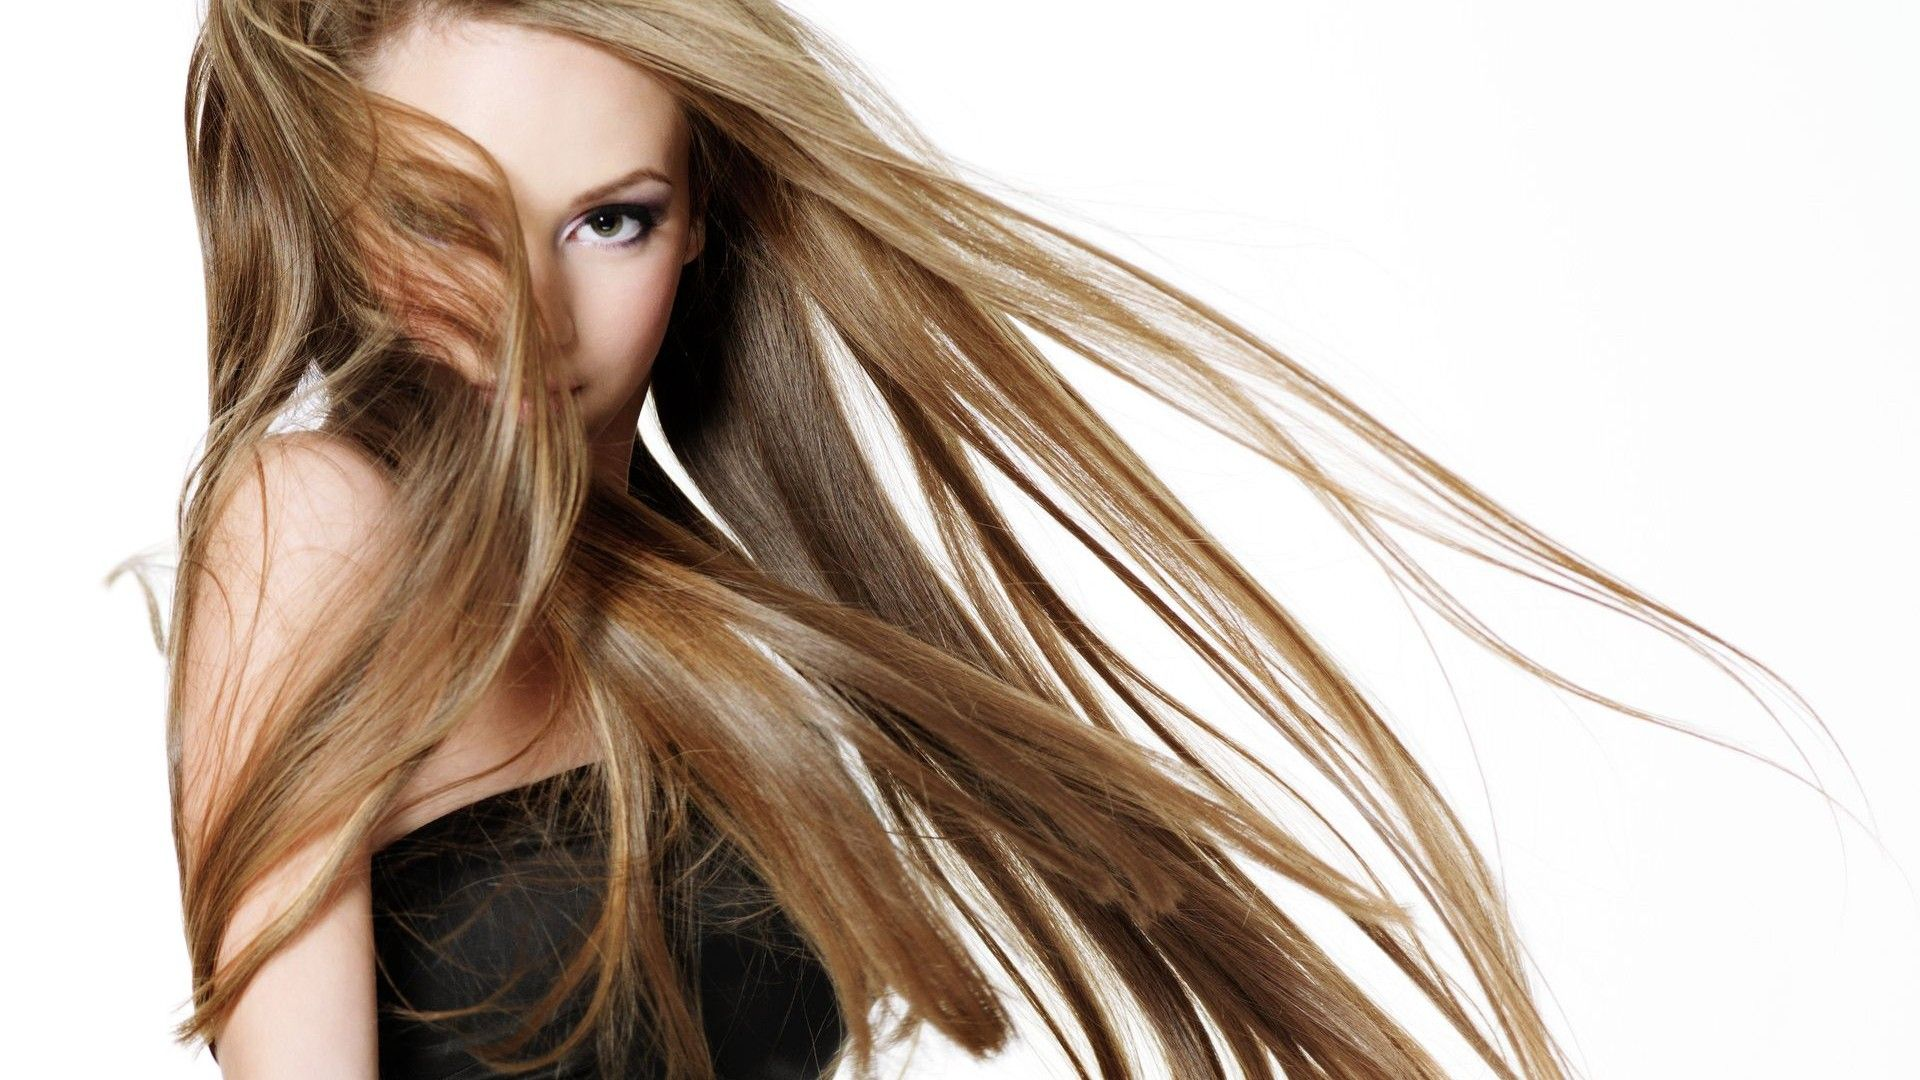 girls hairstyles hd wallpapers